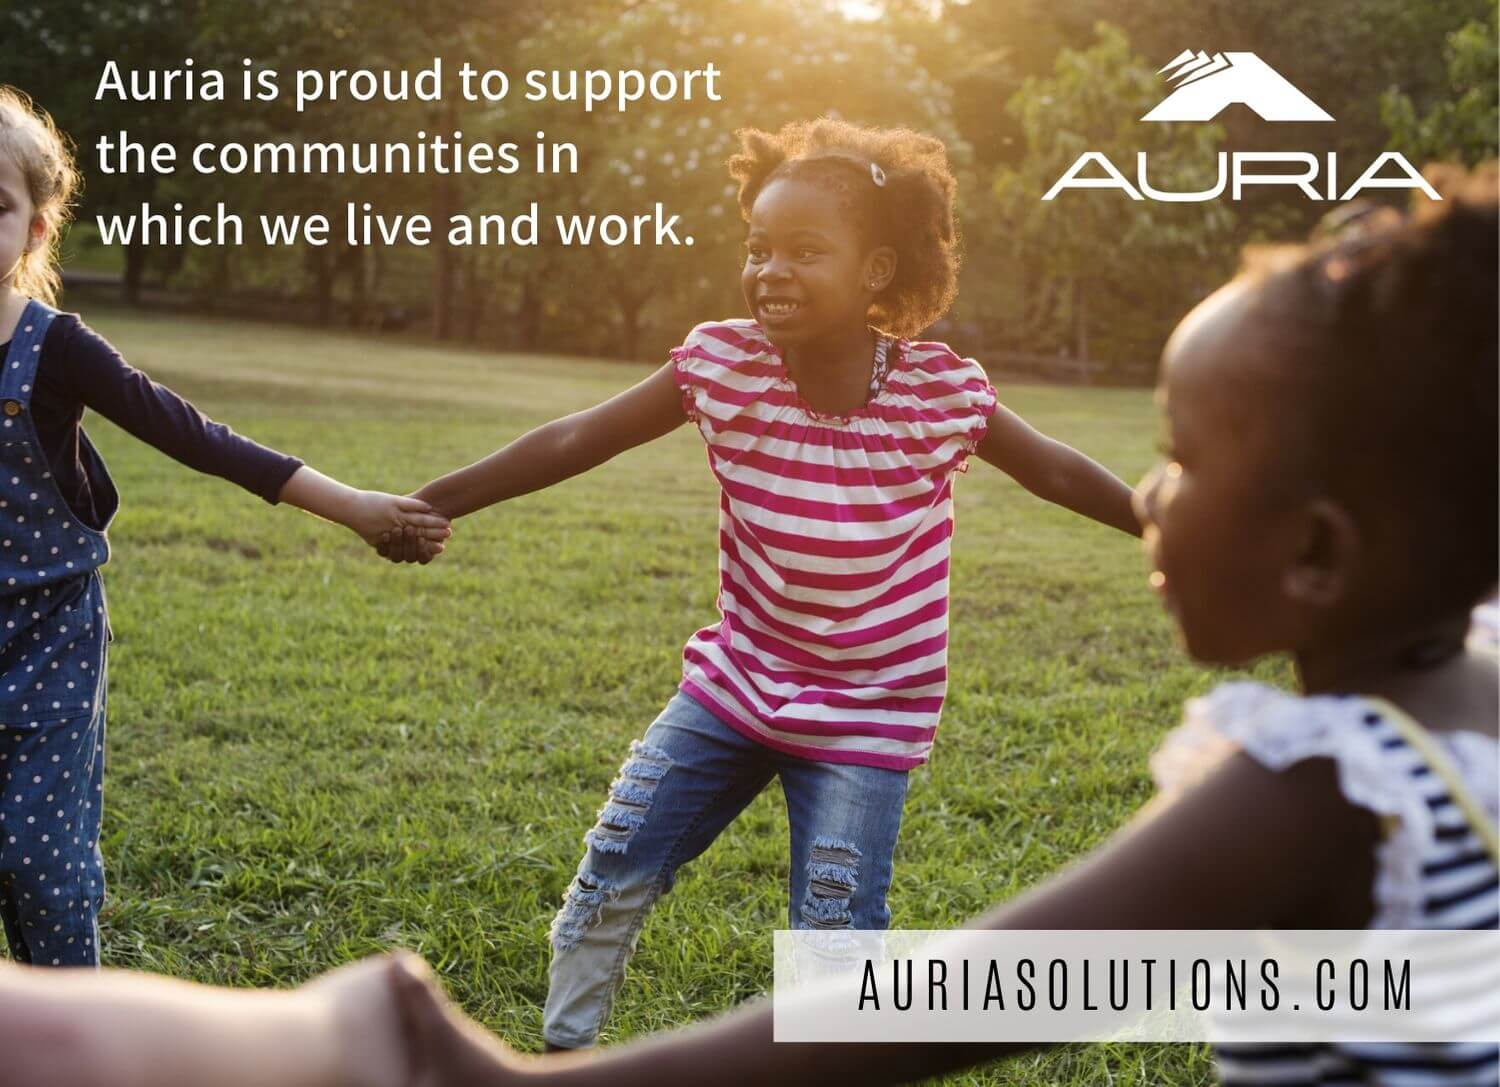 Auria is proud to support the communities in which we live and work